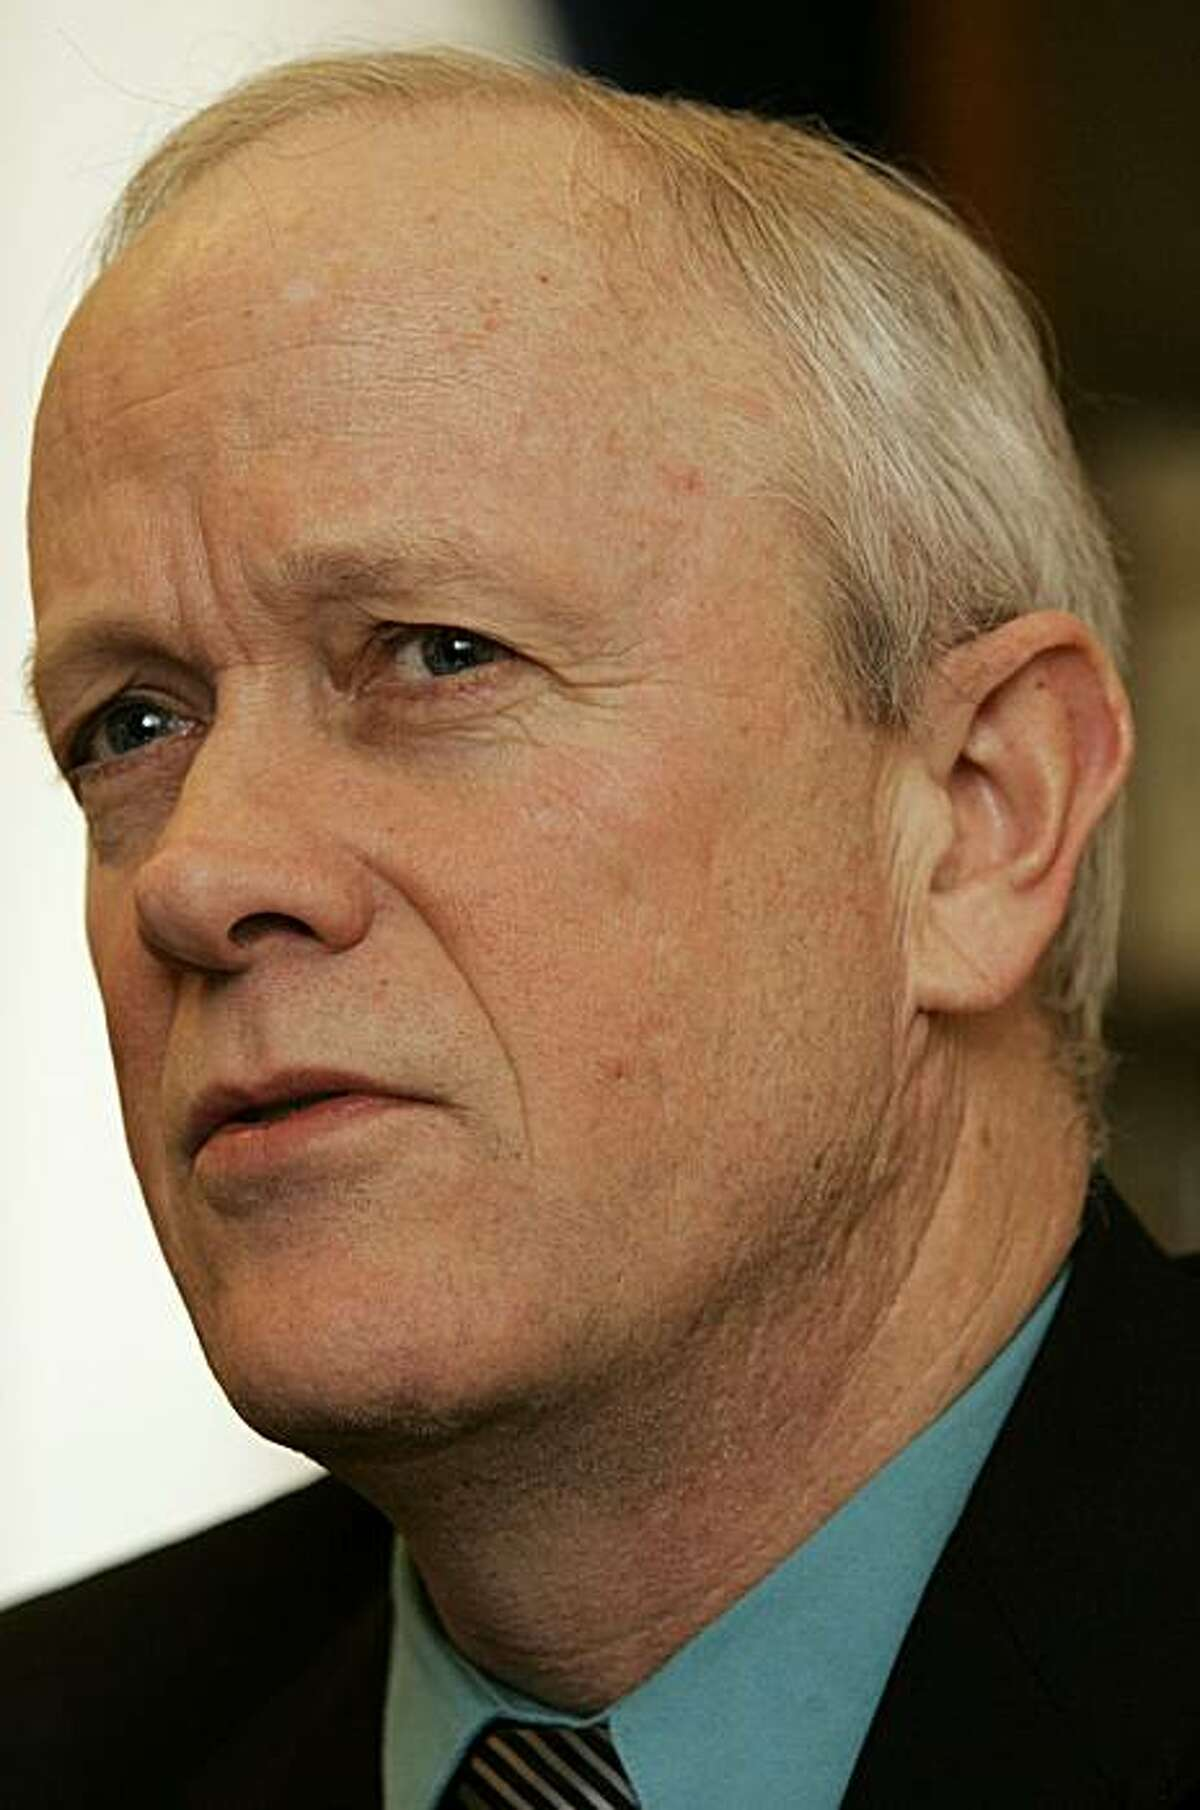 Rep. Jerry McNerney, D-Calif is interviewed by The Associated Press, Monday, Feb. 12, 2007, in his office on Capitol Hill in Washington. (AP Photo/ Haraz N. Ghanbari) Ran on: 07-27-2007 Rep. Jerry McNerney tied the nation's drug problem to relaxation of U.S. drug policy.